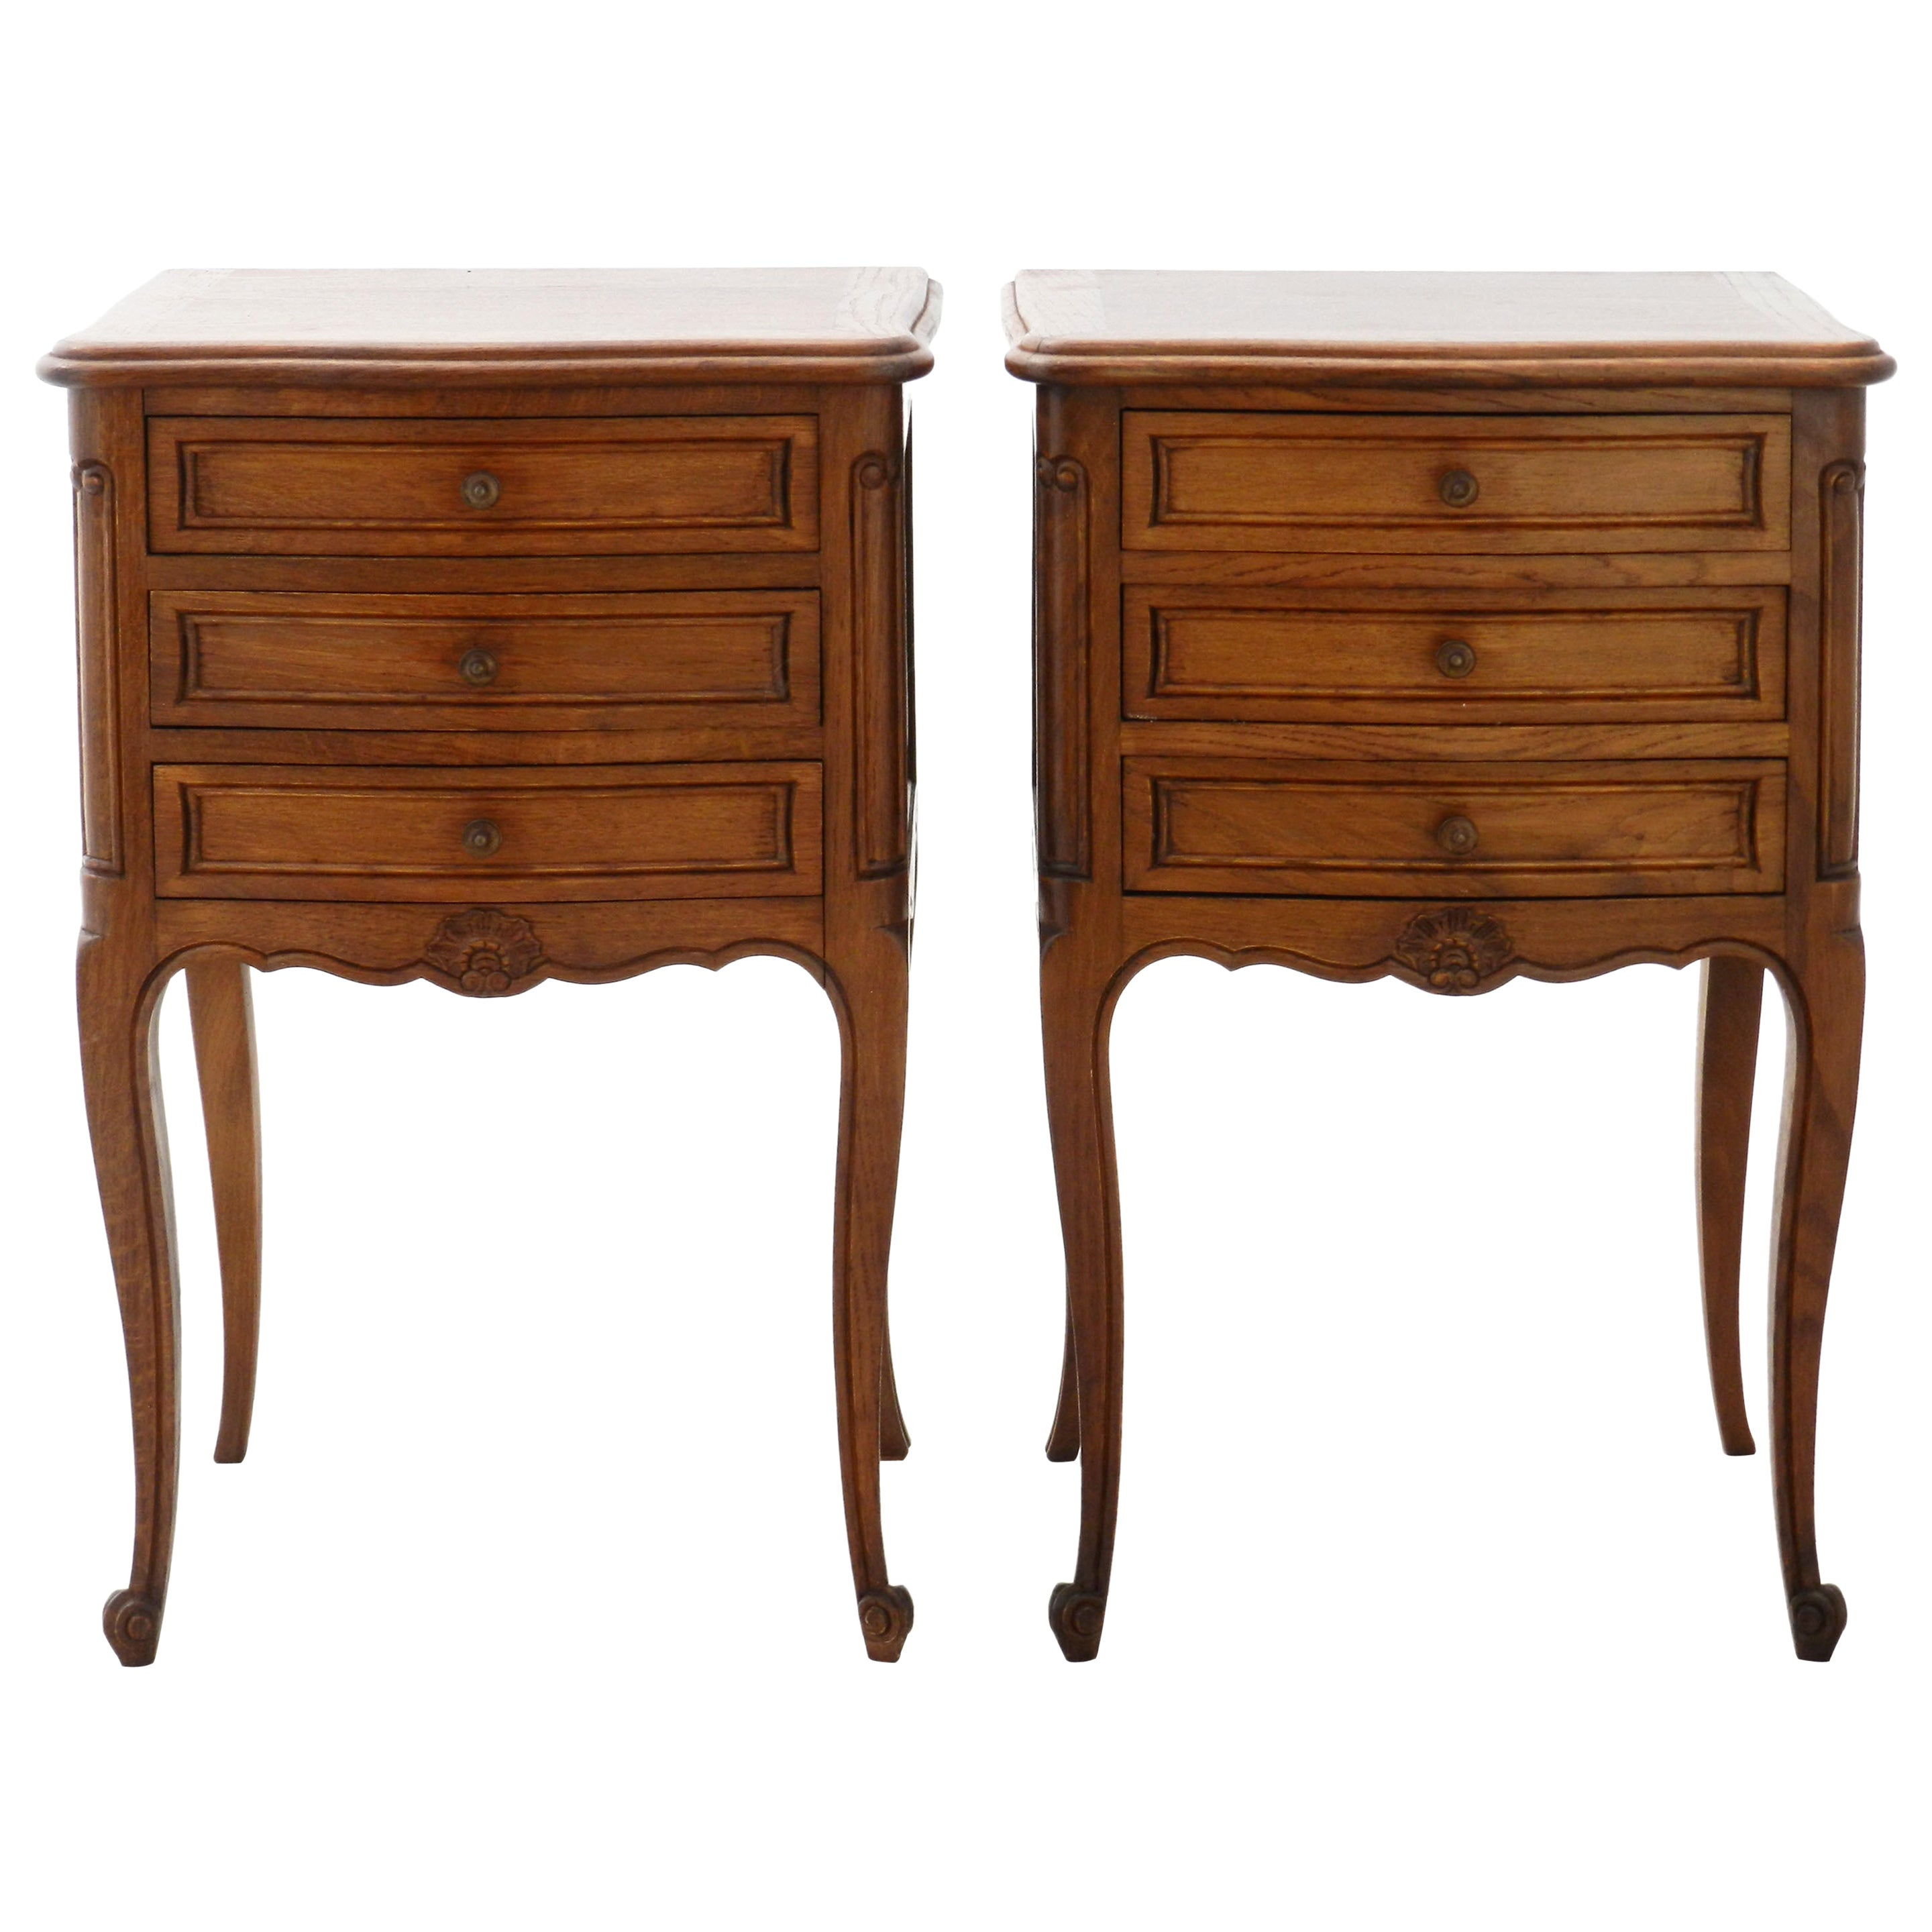 Pair of Nightstands Side Cabinets French Bedside Tables Louis Revival Vintage